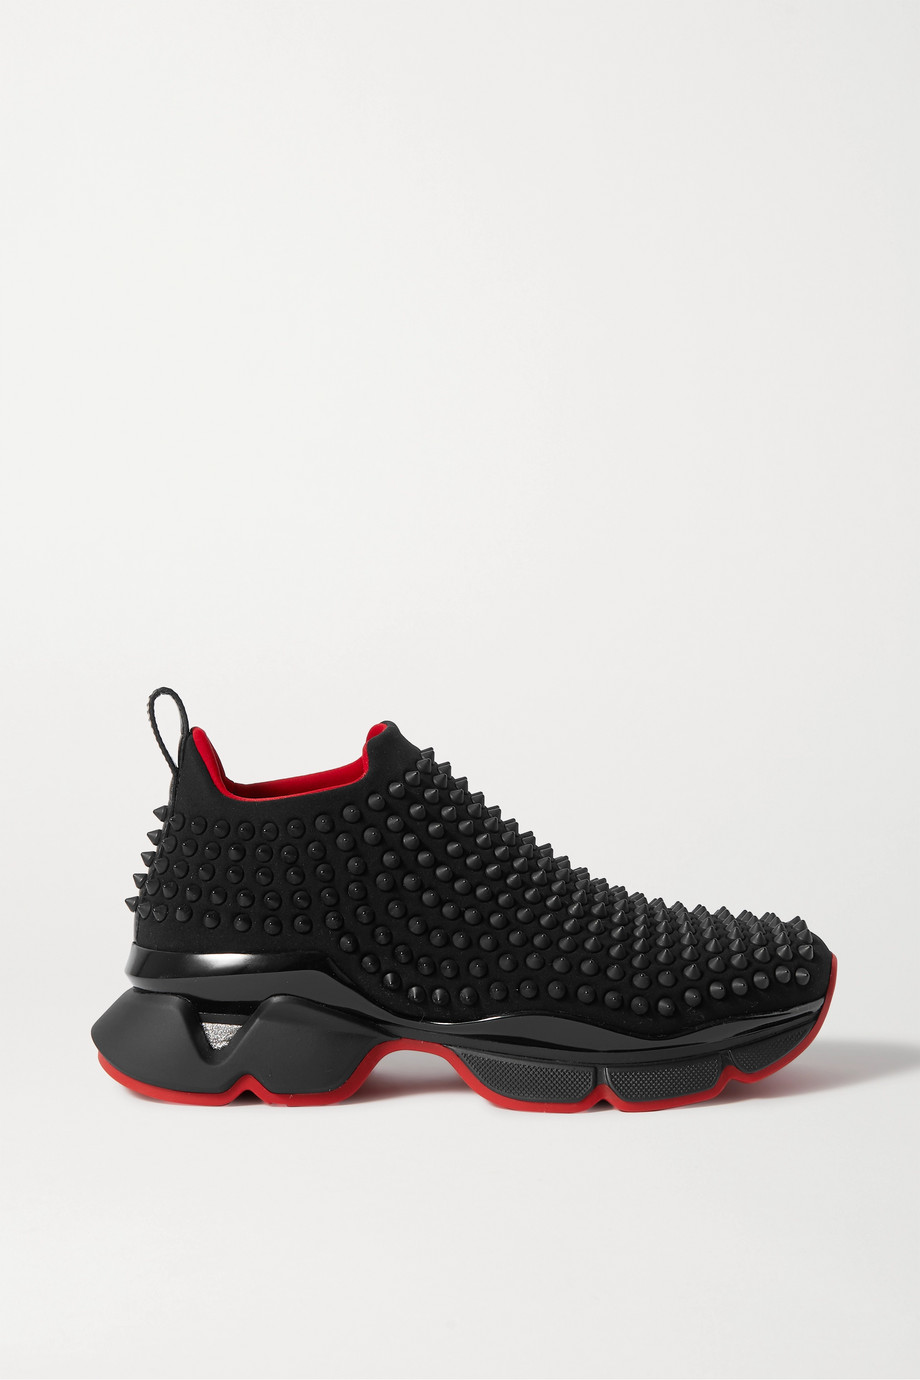 Christian Louboutin Spike Sock Donna studded neoprene sneakers